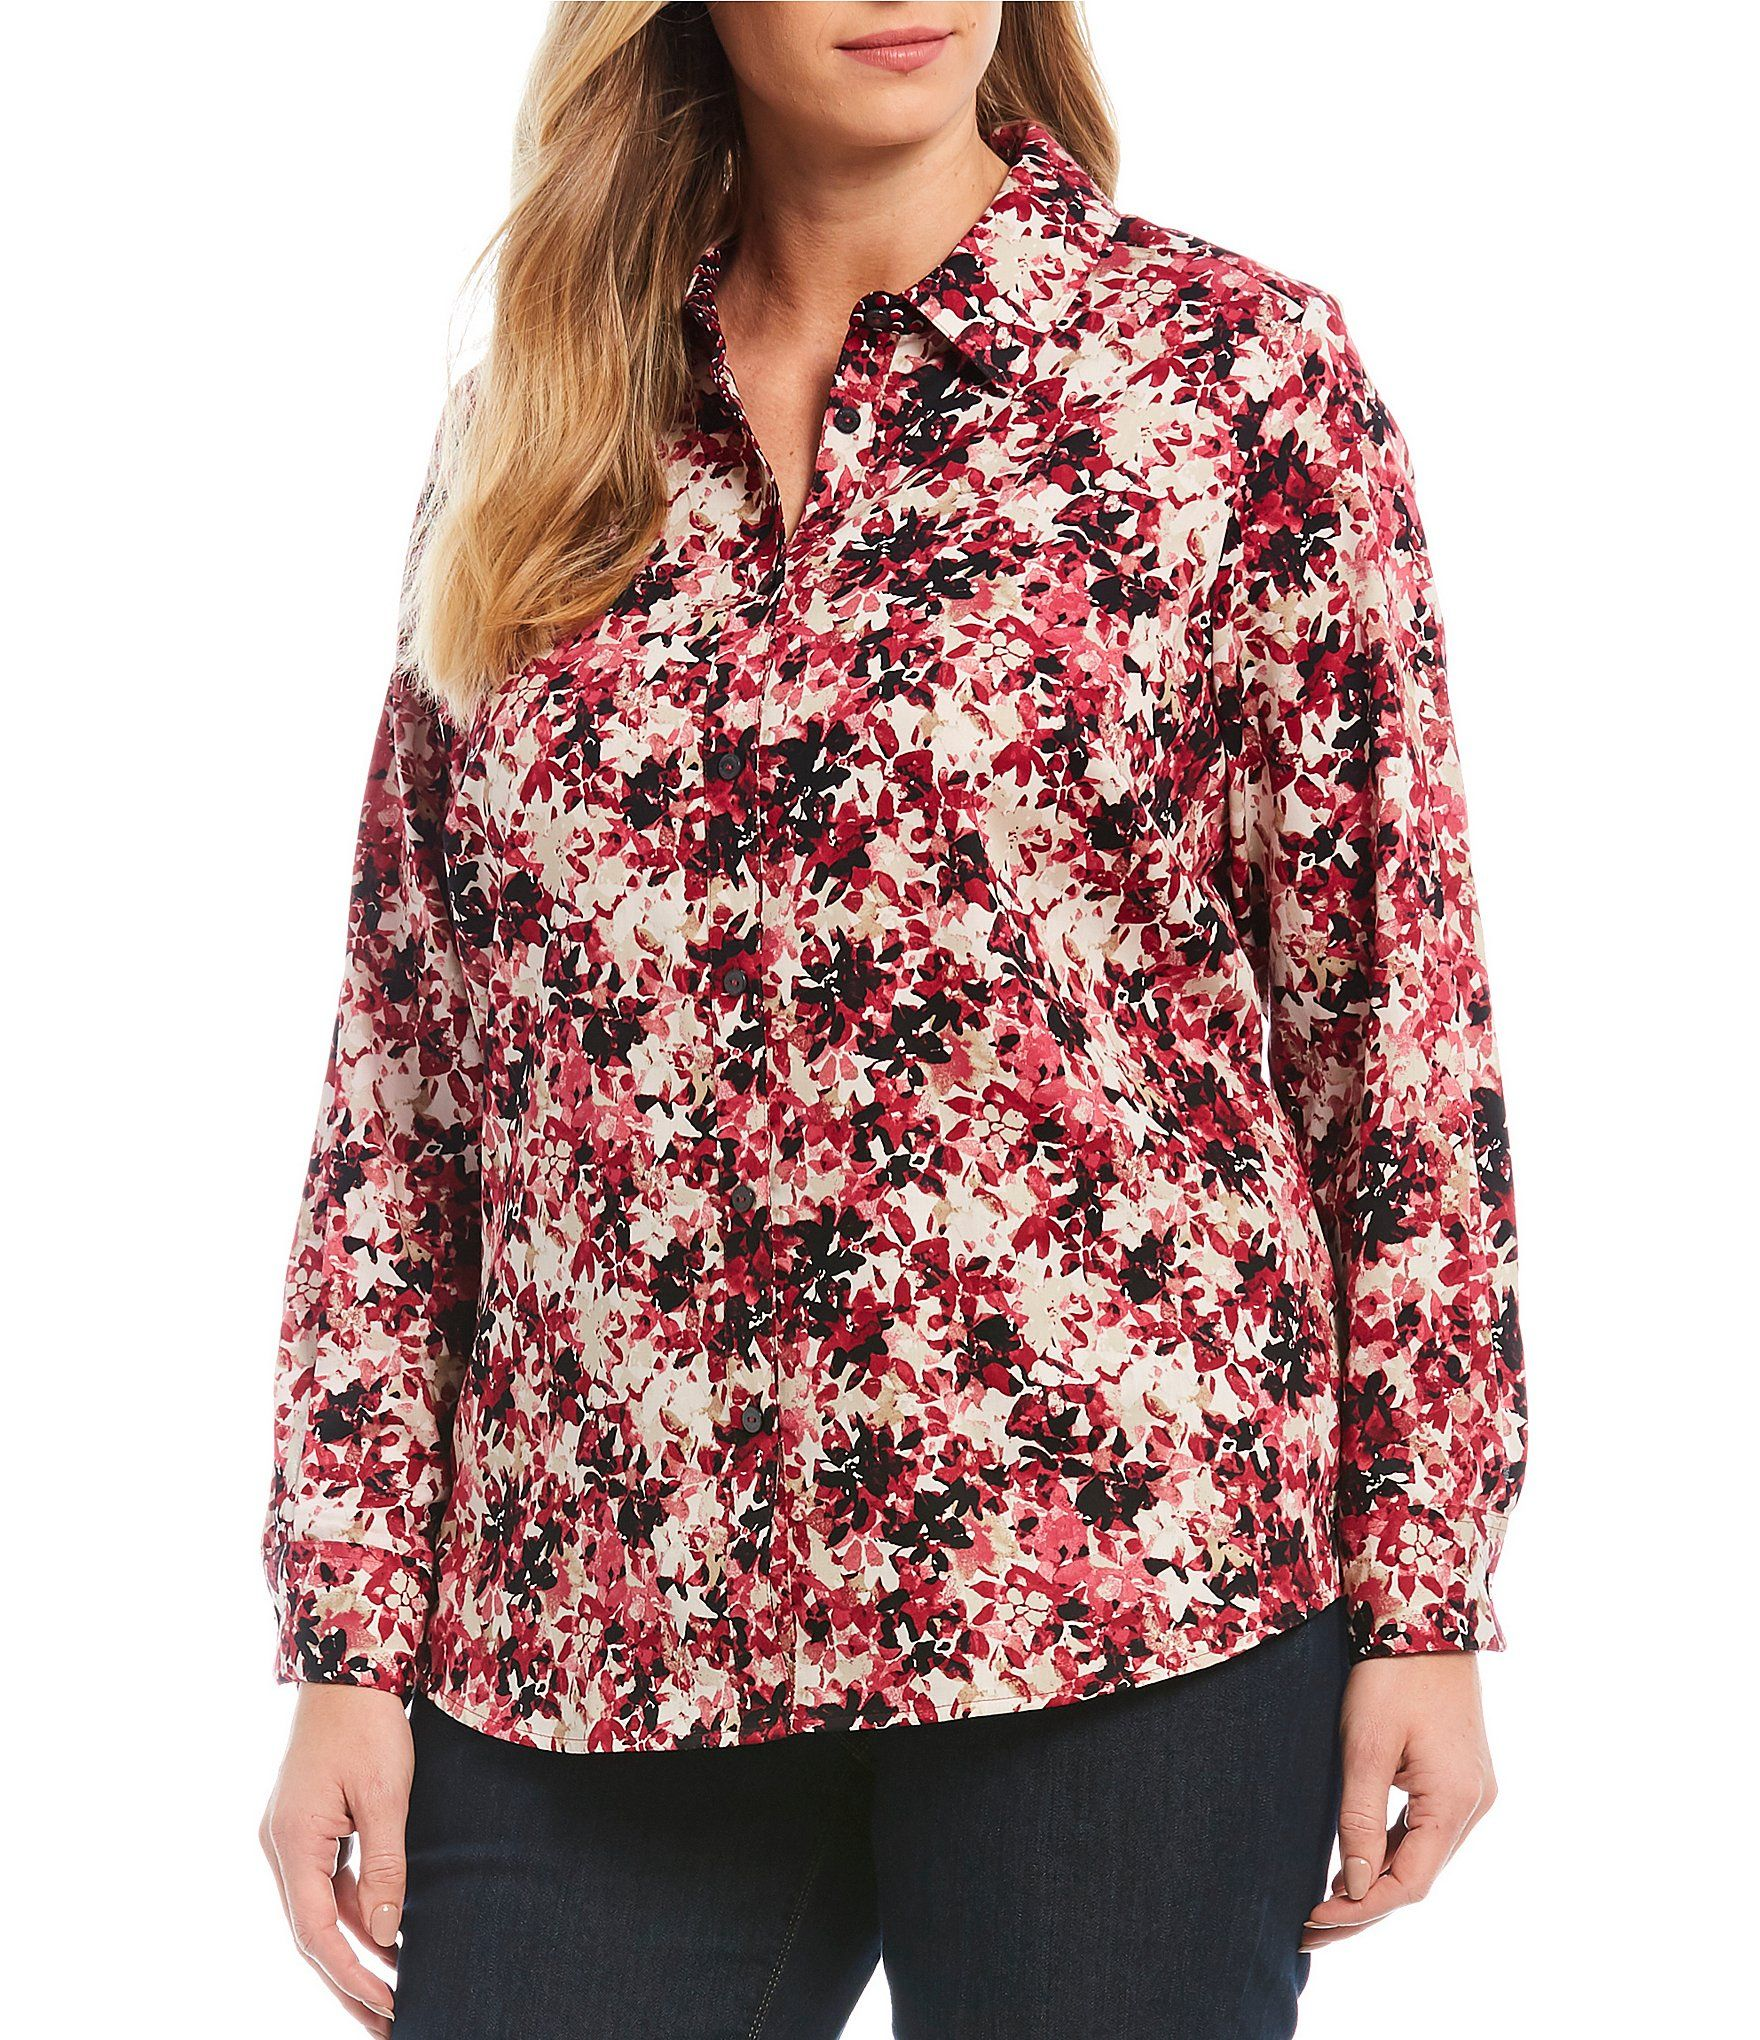 Foxcroft Plus Size Ava Vintage Floral Cotton Sateen Button Front Blouse | Dillard's 1